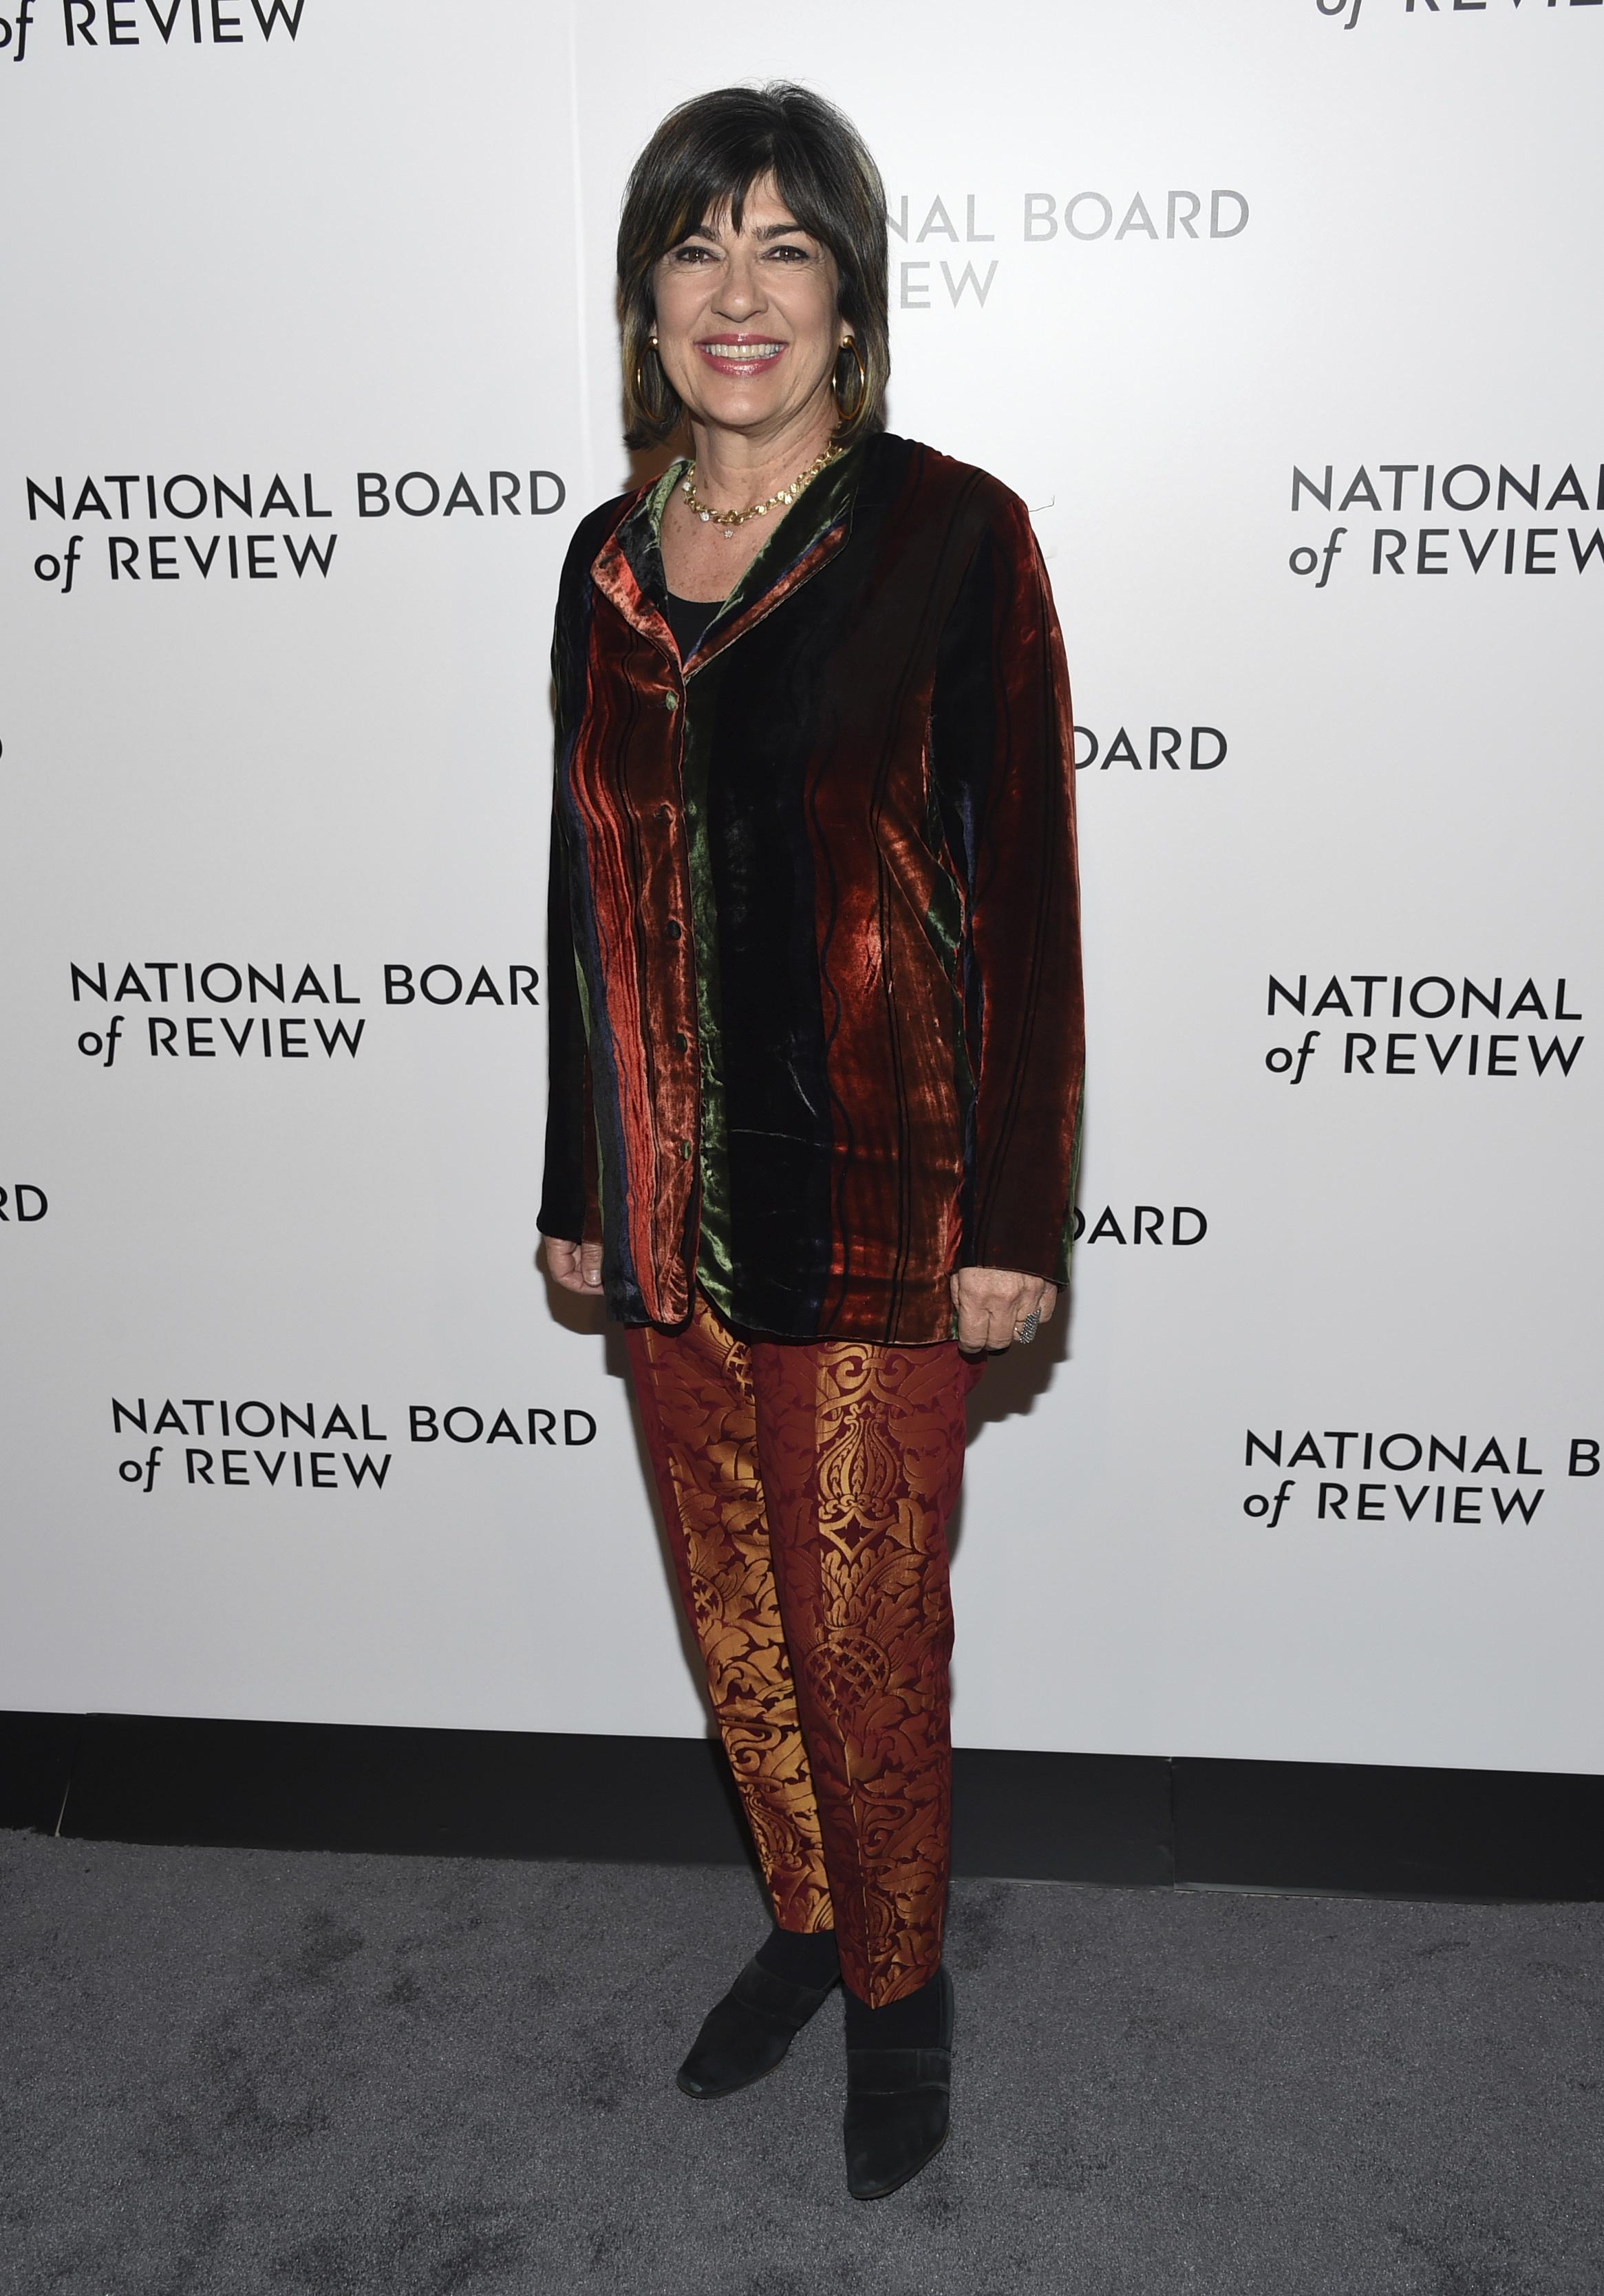 05c459867b7b Christiane Amanpour attends the National Board of Review Awards Gala at  Cipriani 42nd Street on Tuesday